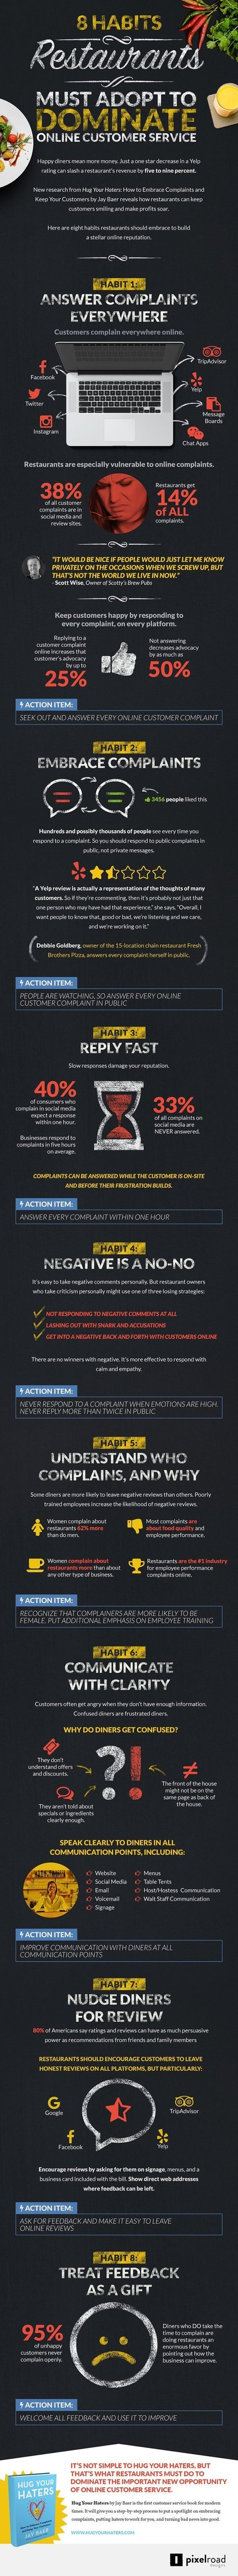 The 8 Habits Restaurants Must Adopt to Dominate Online Customer Service (Infographic)   Leadership and Management   Scoop.it